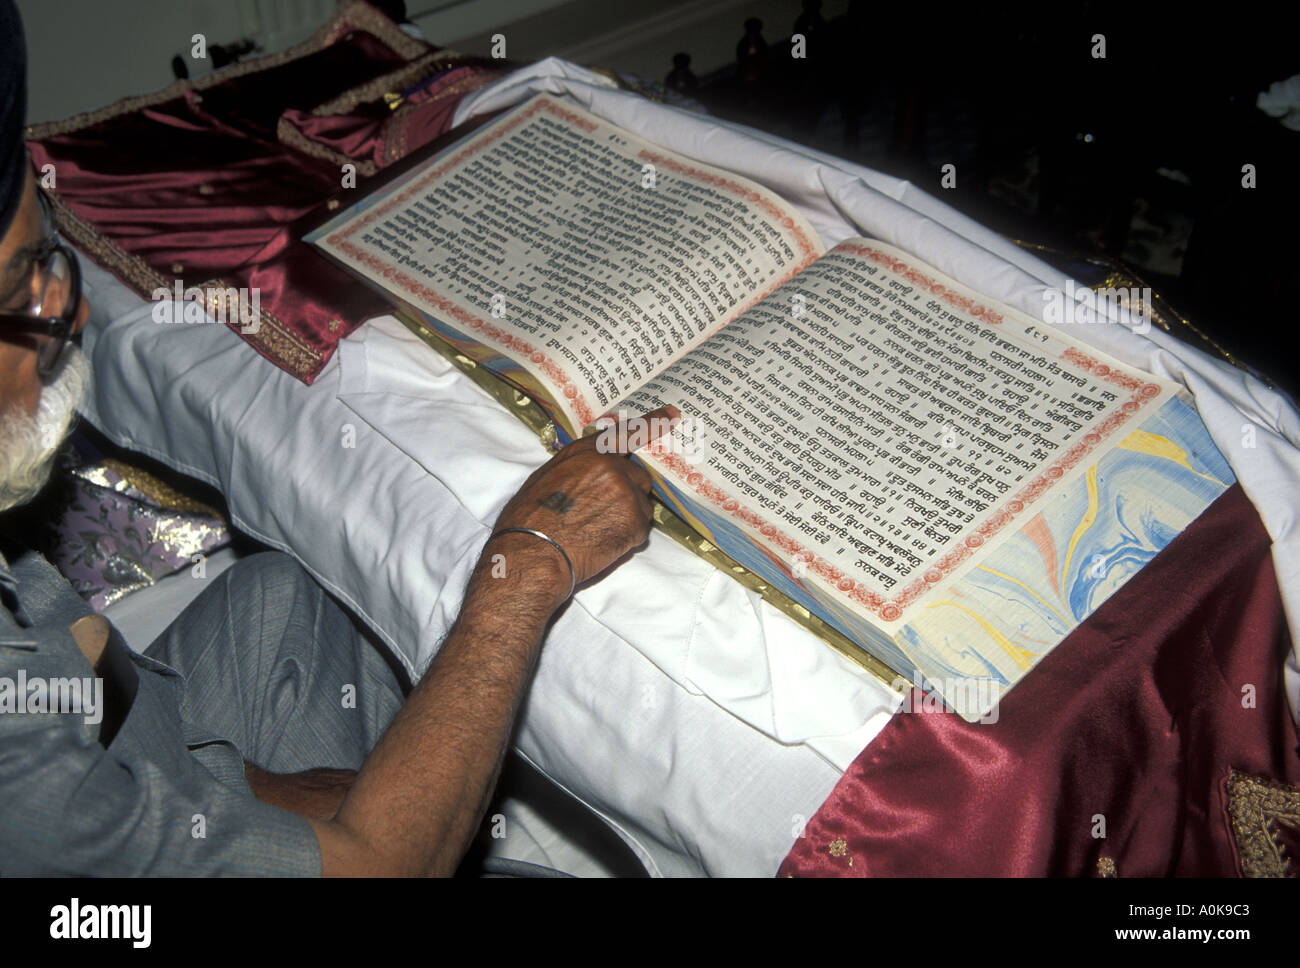 The Granthi  choosing a new baby's name from the Guru Granth Sahib or sacred Sikh texts - Stock Image